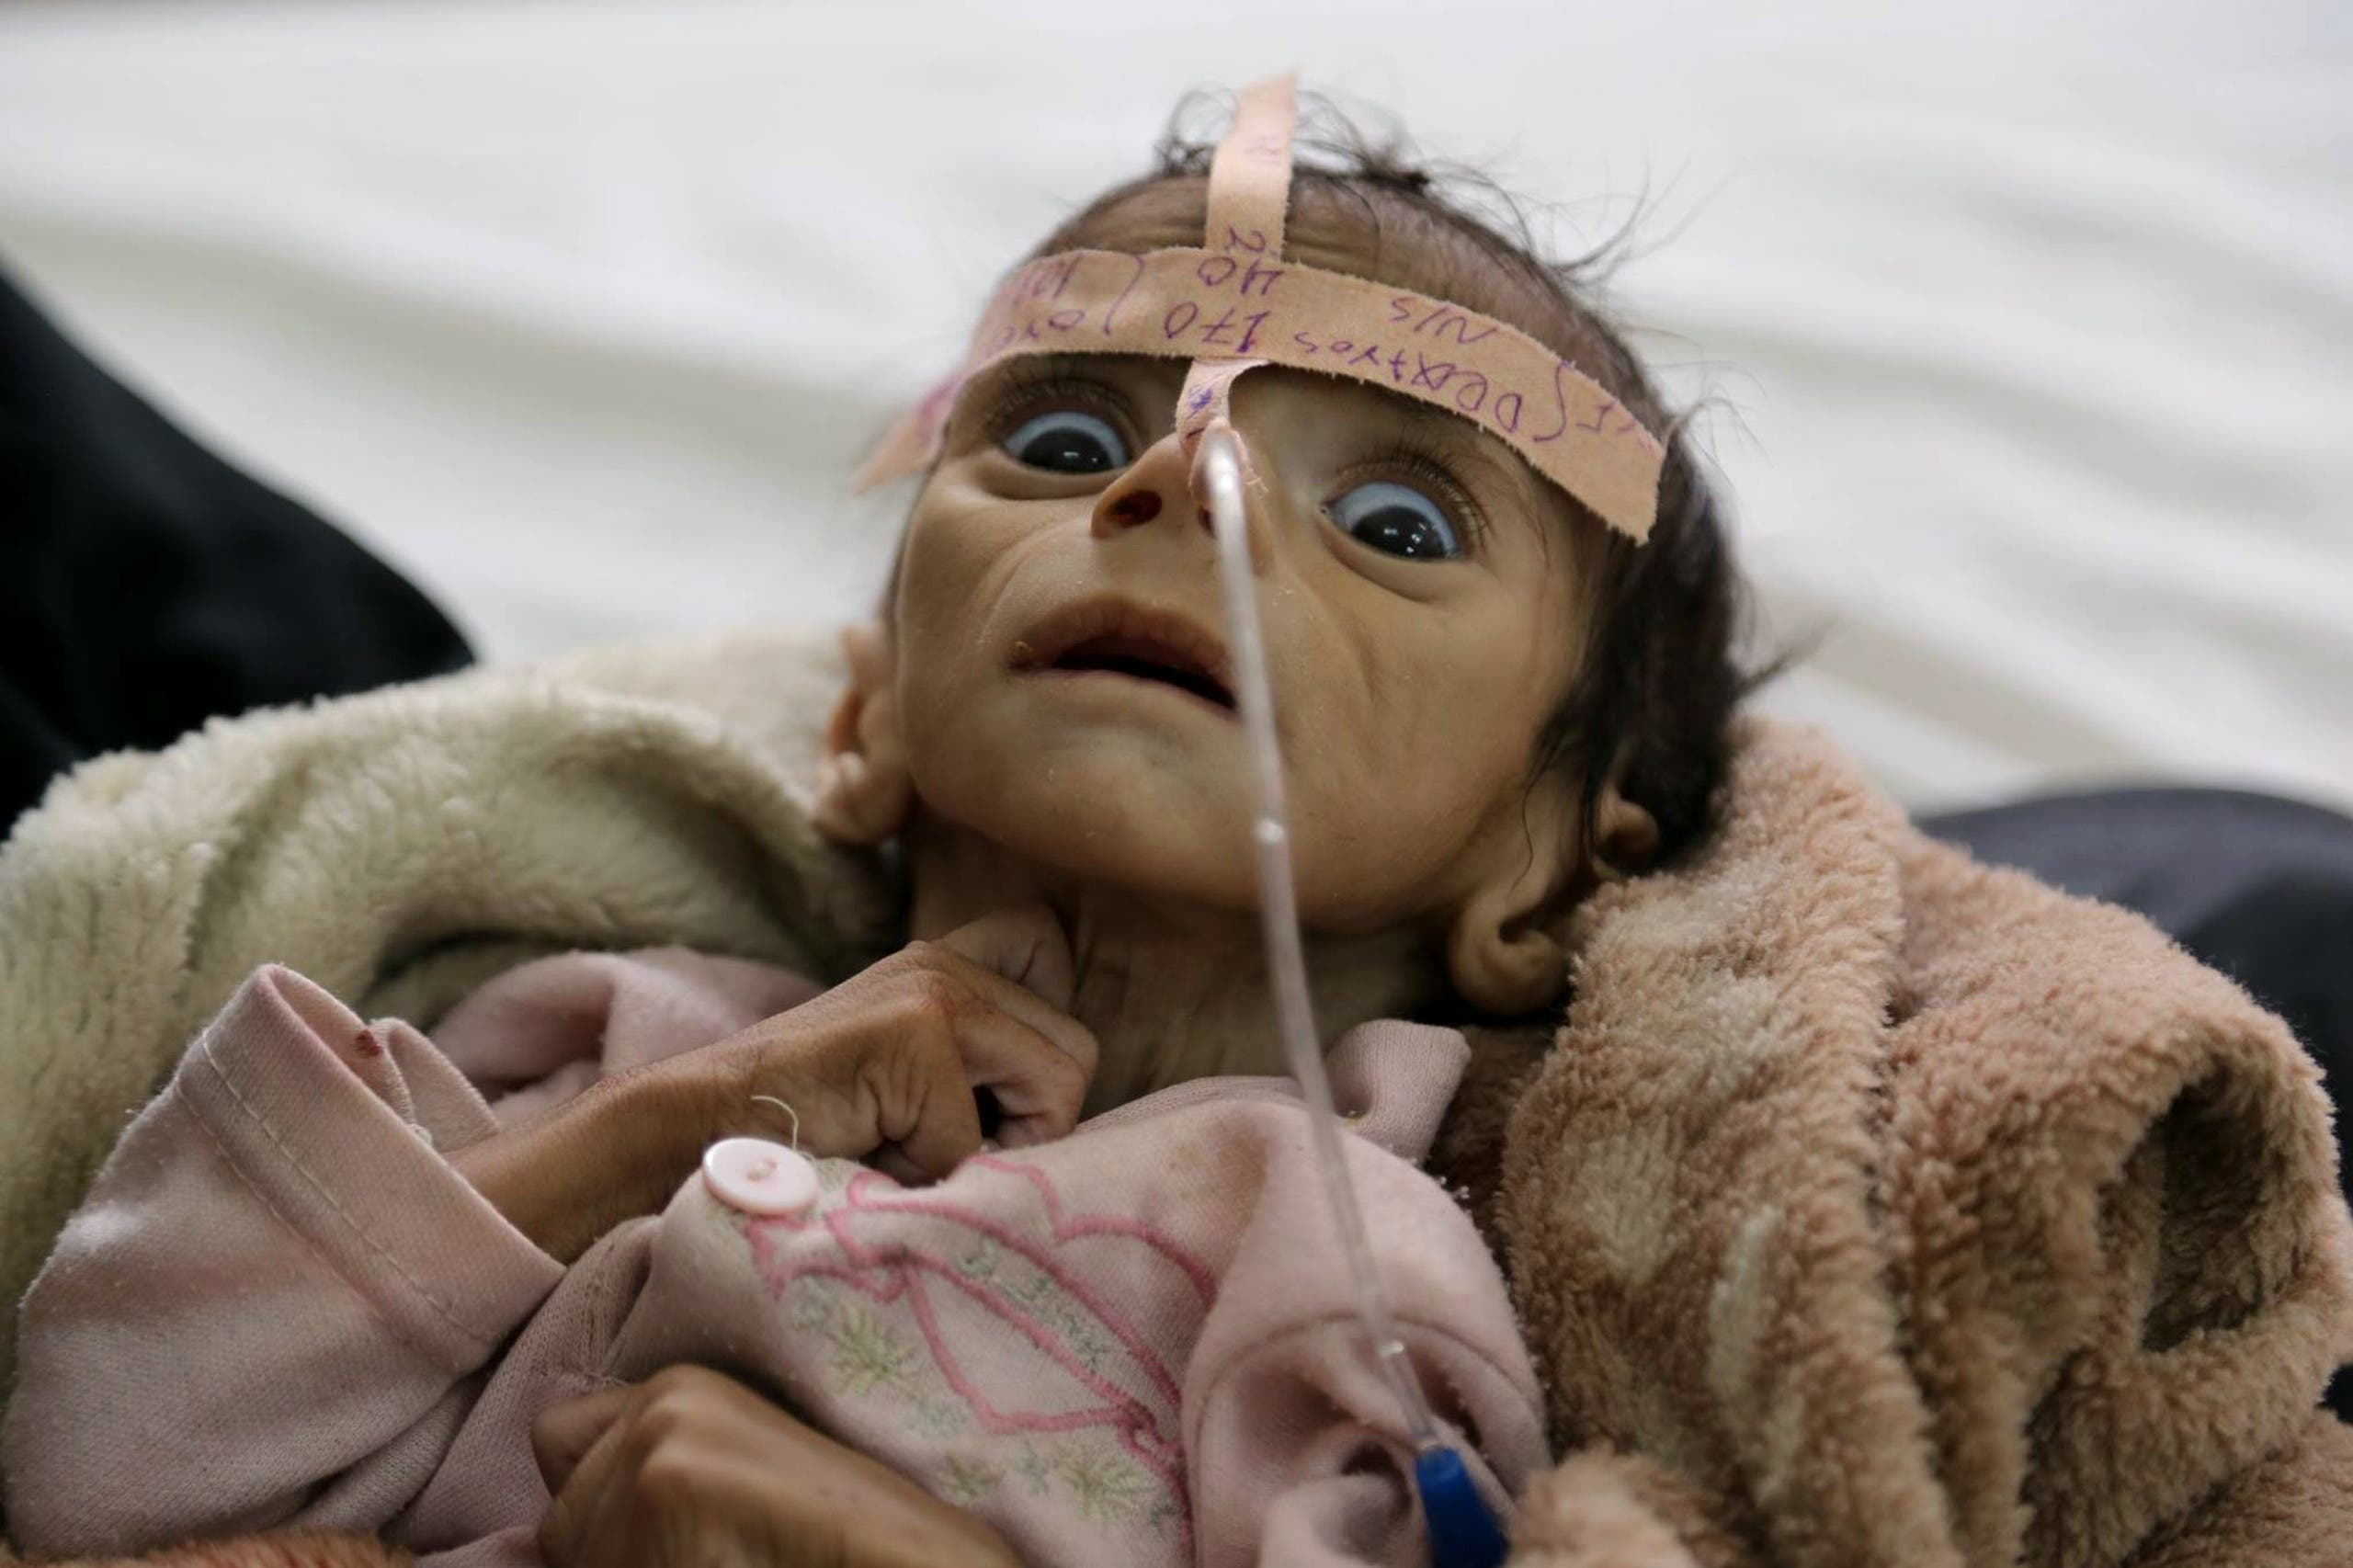 In this Tuesday, March 22, 2016 photo, infant Udai Faisal, who is suffering from acute malnutrition, is hospitalized at Al-Sabeen Hospital in Sanaa, Yemen. ap